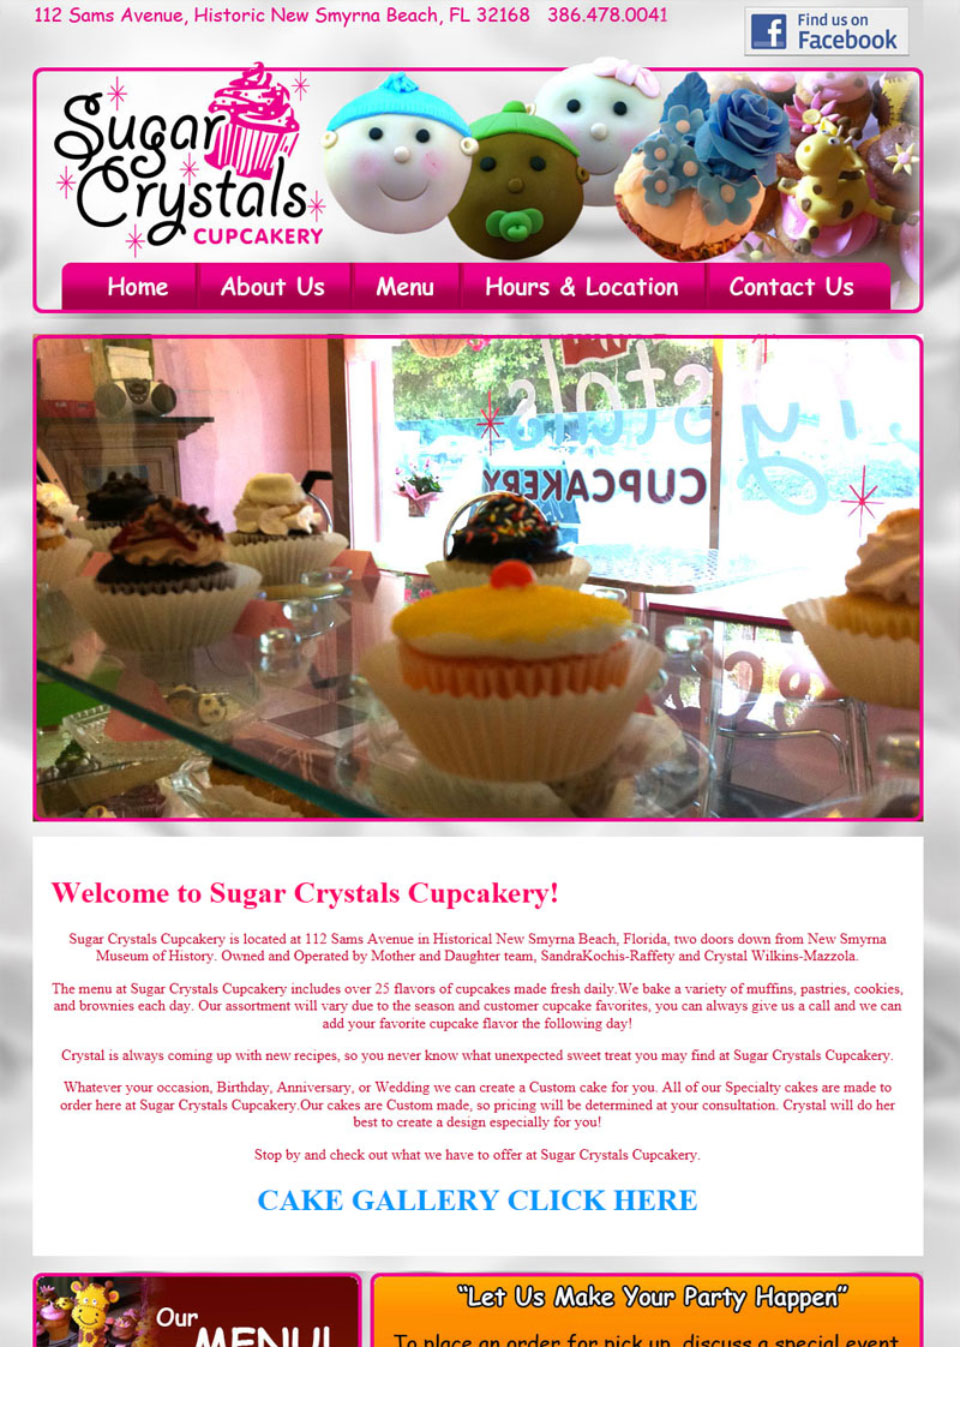 Sugar Crystals Cupcakery Website Design